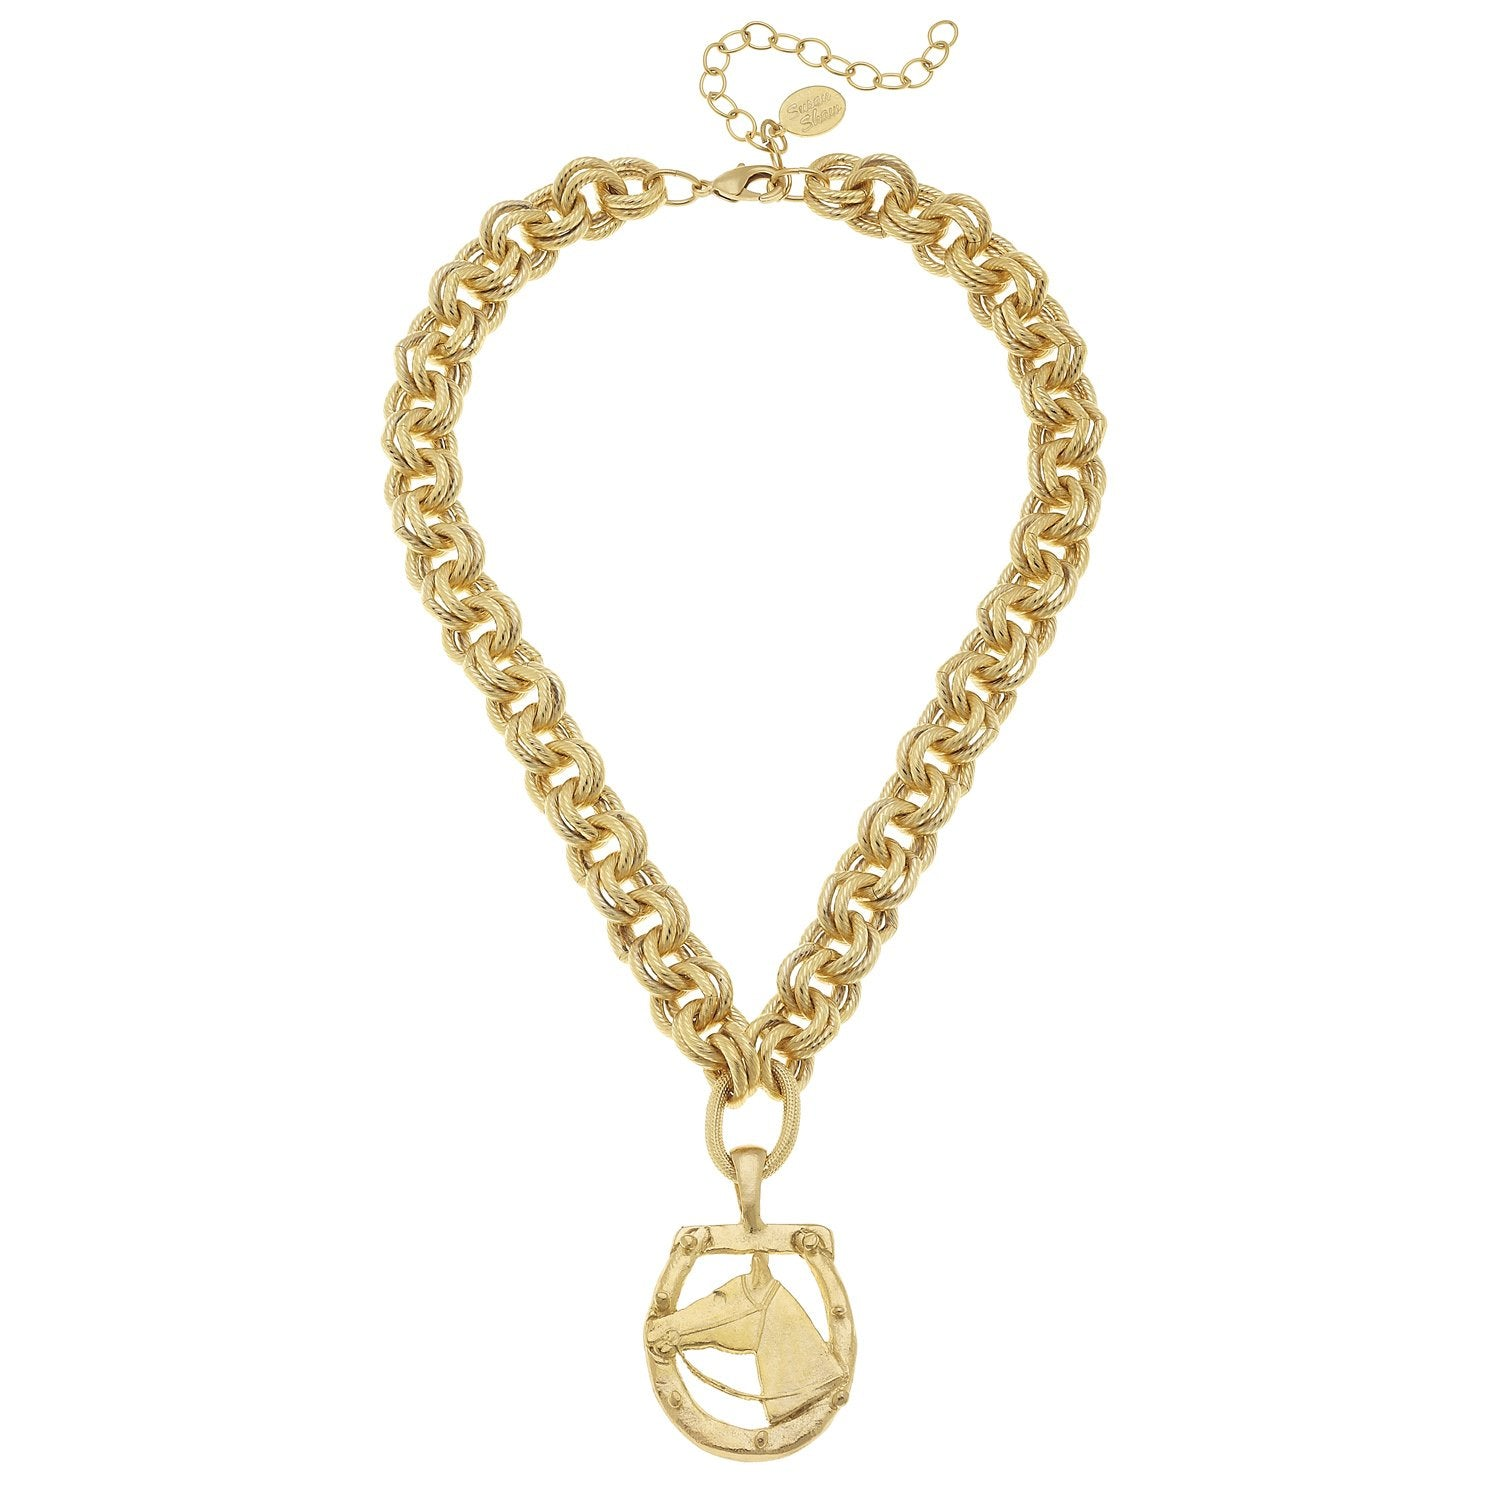 Susan Shaw Gold Horseshoe Horsehead Chain Necklace Susan Shaw Jewelry